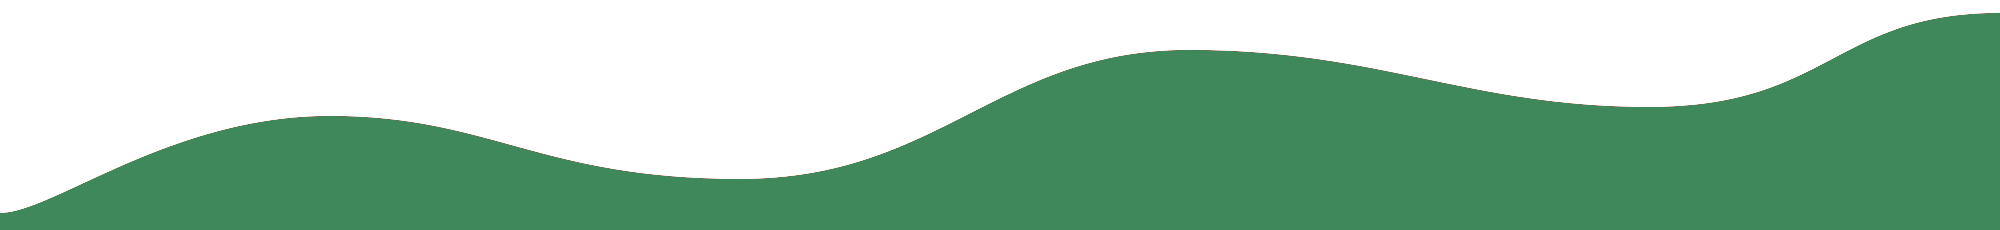 Green wave footer border